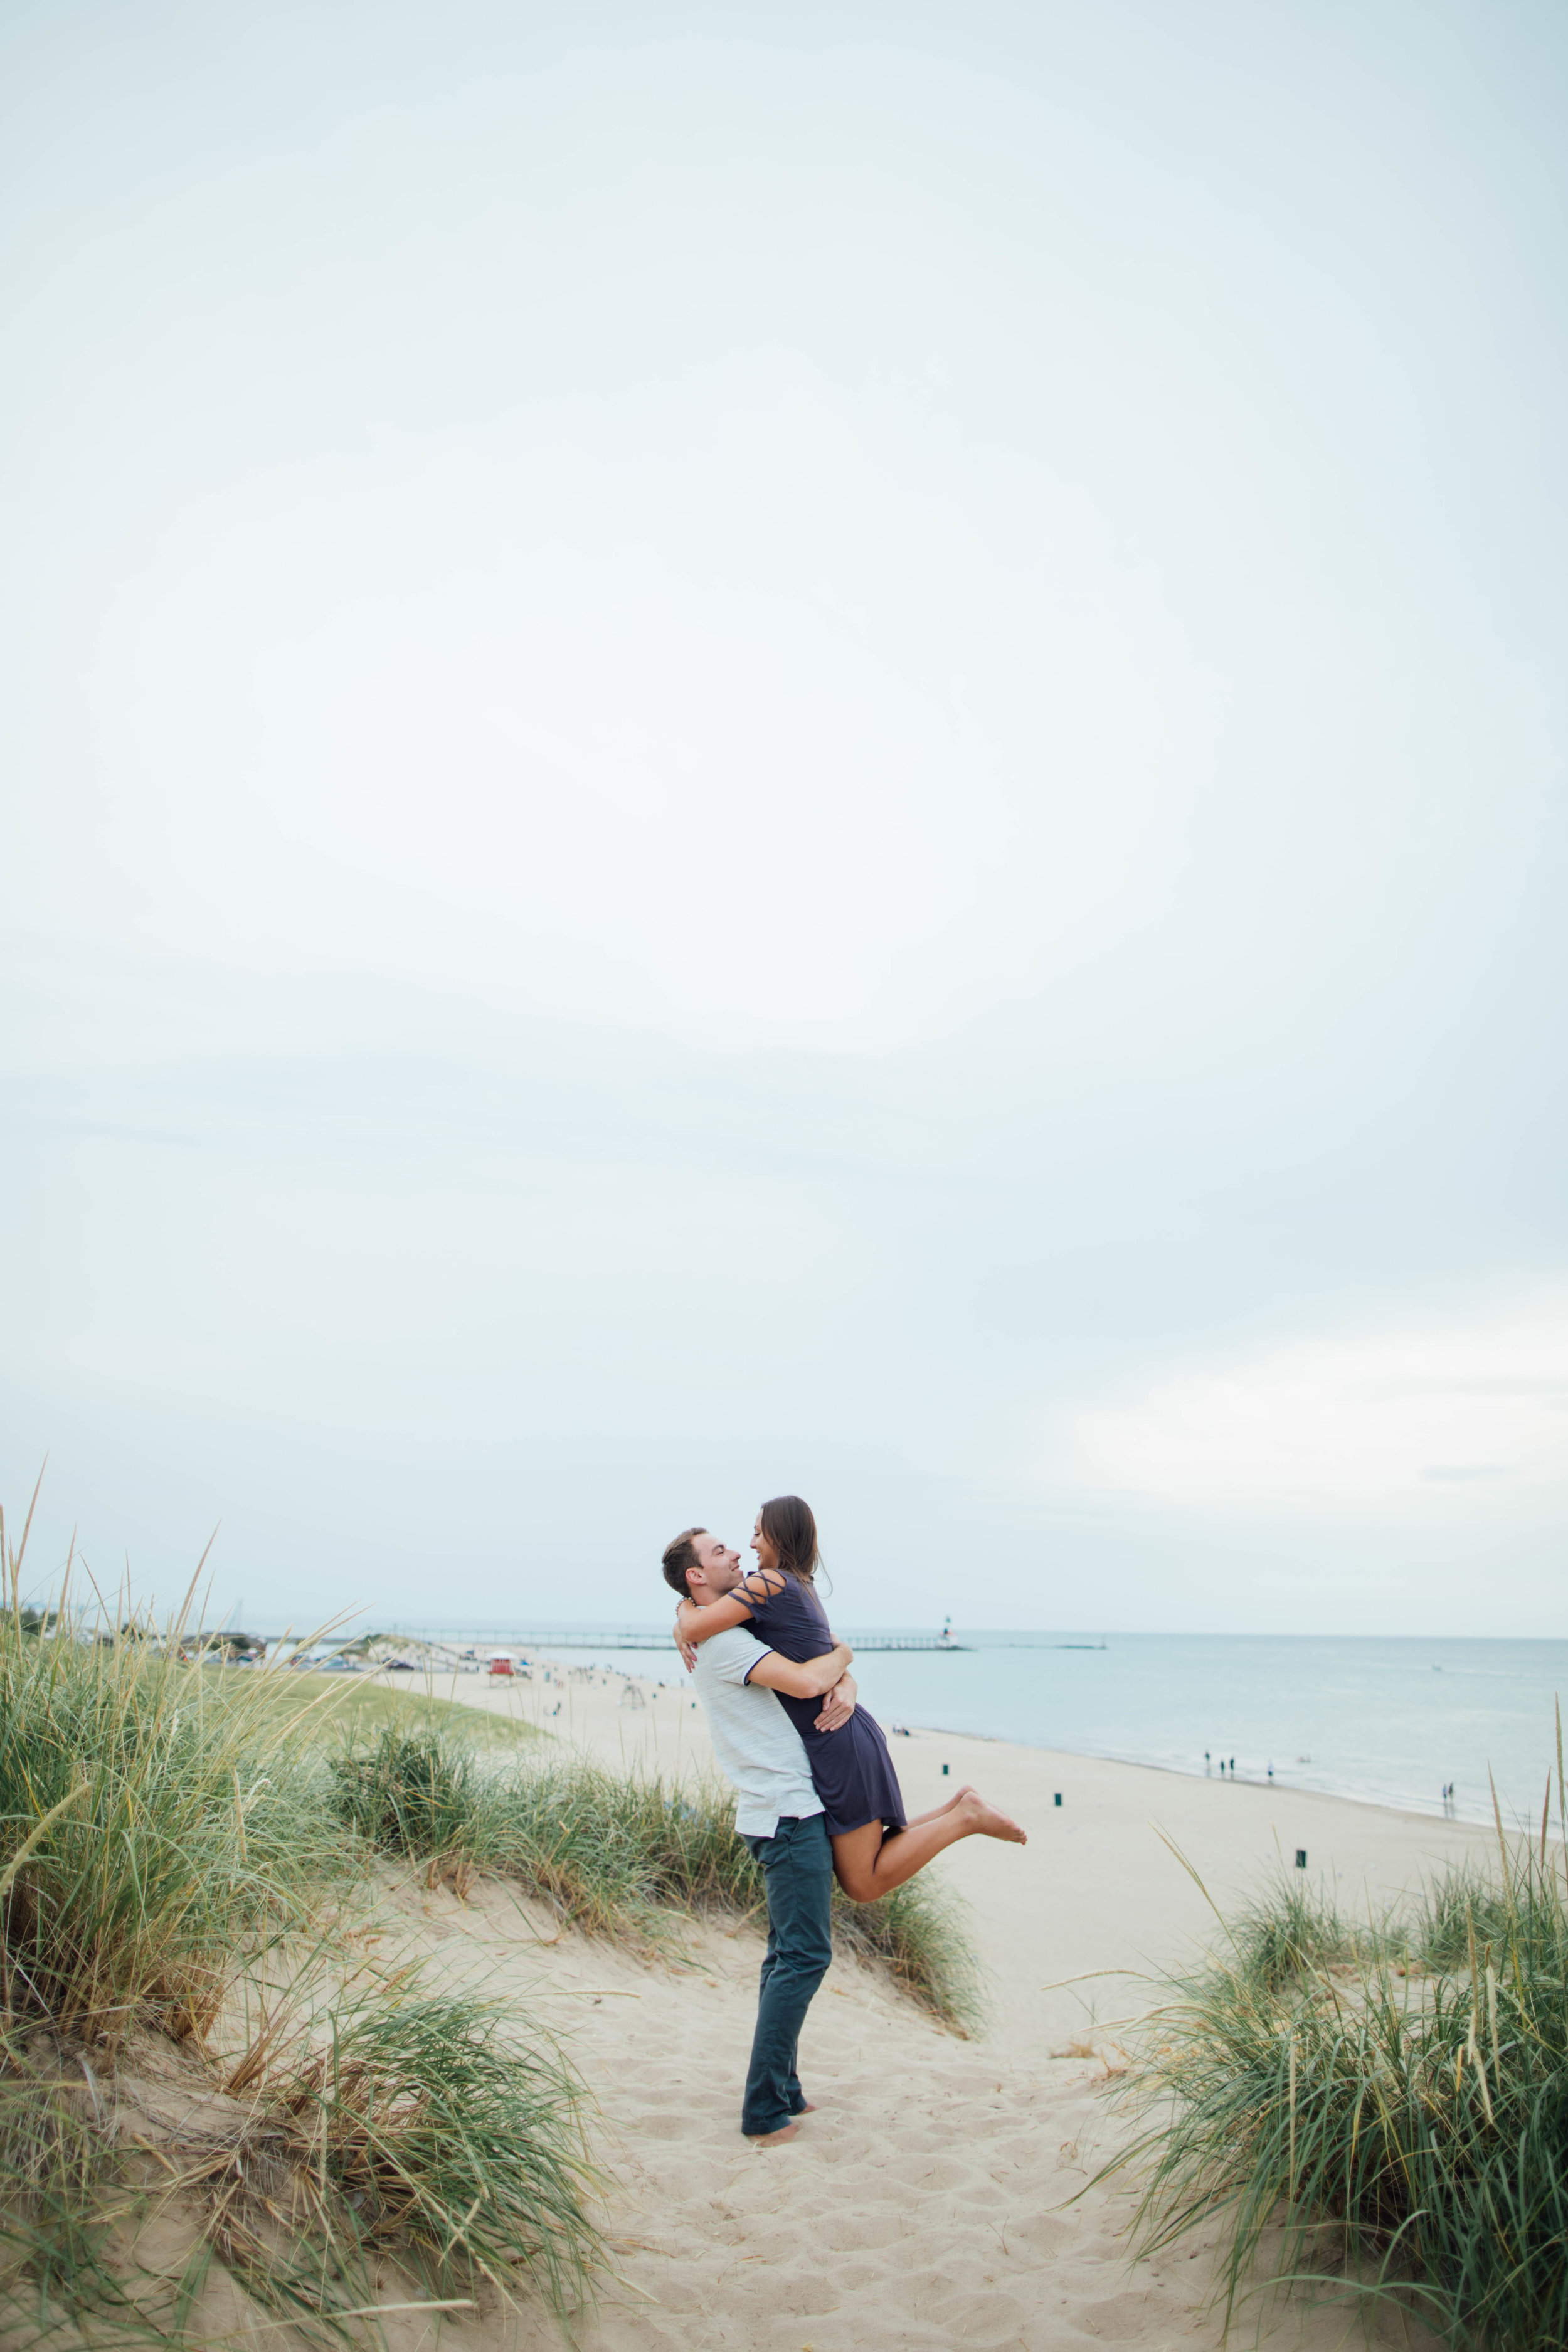 Matt+Joce_Engagement-32.jpg